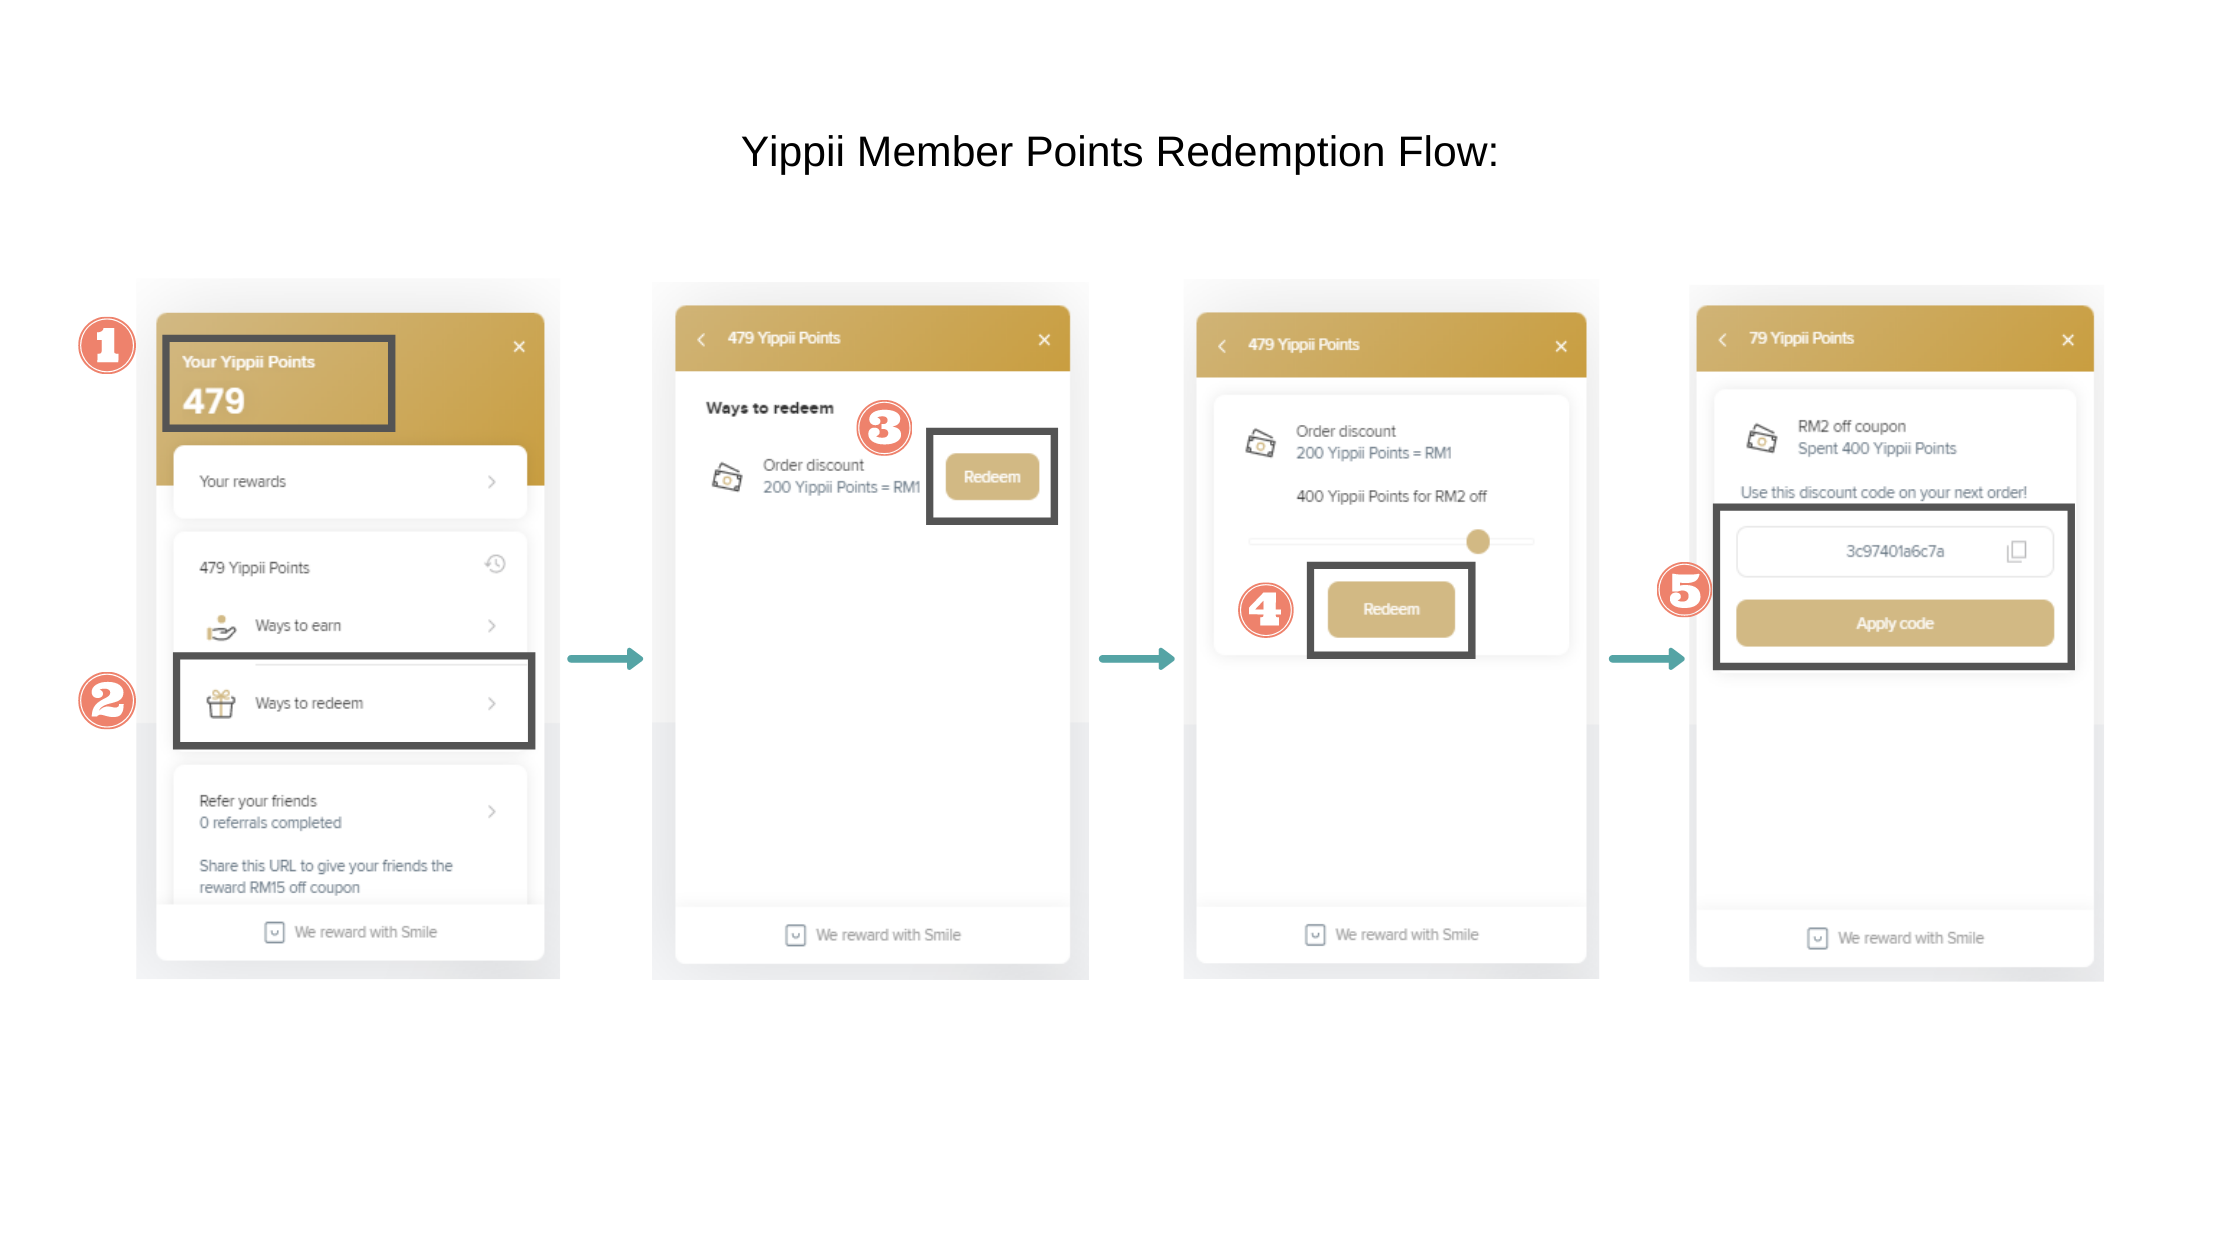 Yippii Member Points Redemption Flow